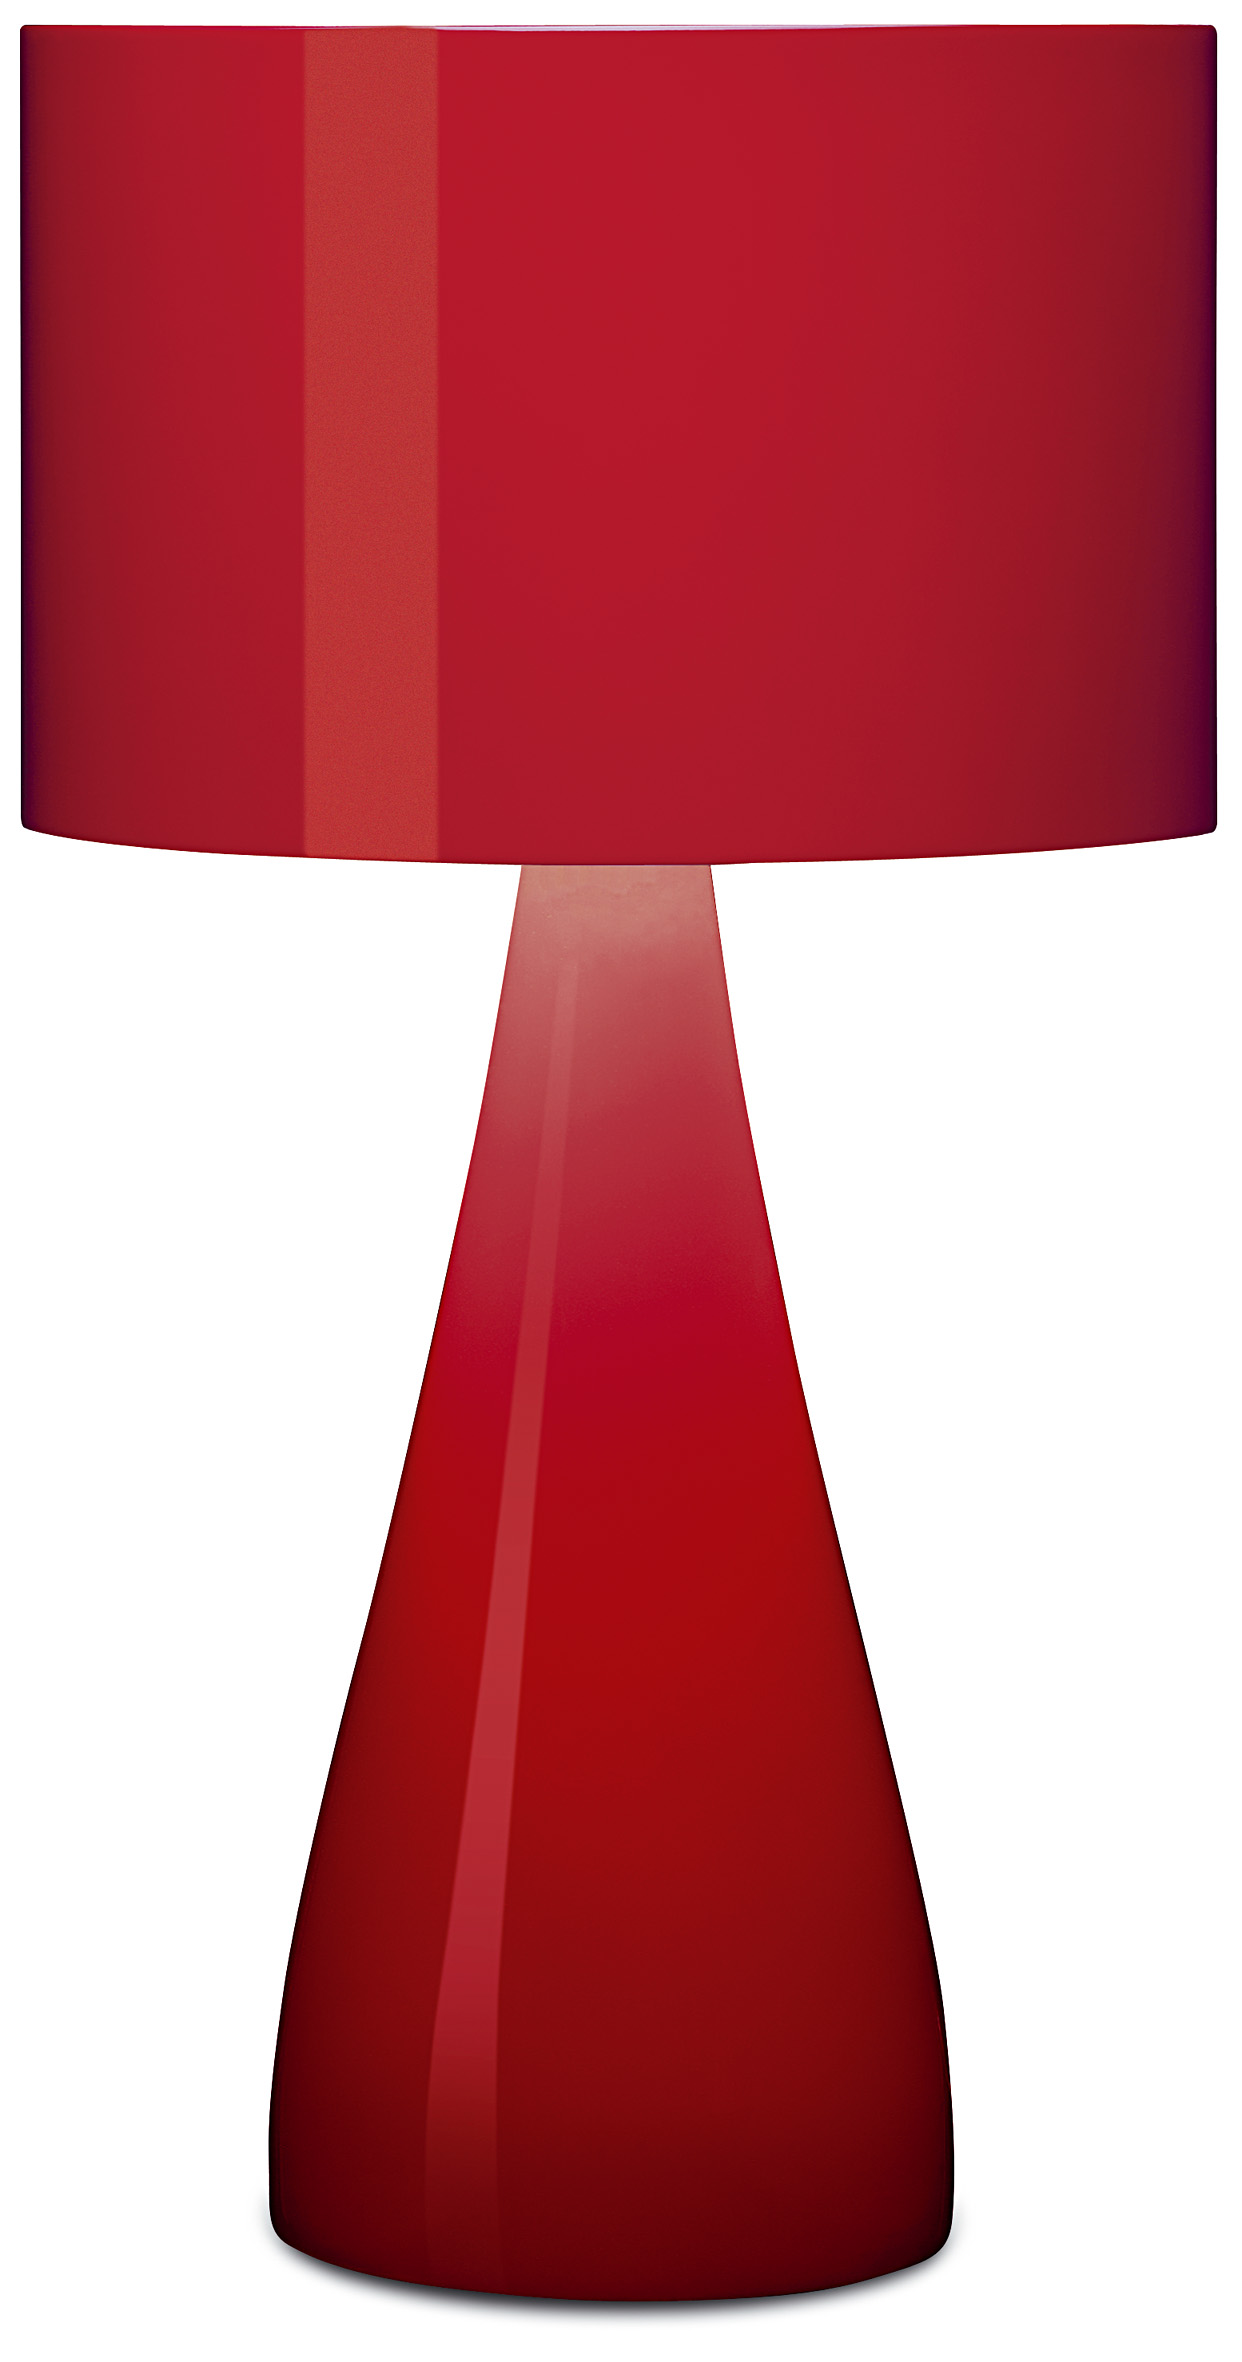 Jazz Table Lamp Mini 40cm 3xG9 40w - Lacquered Vison Mate